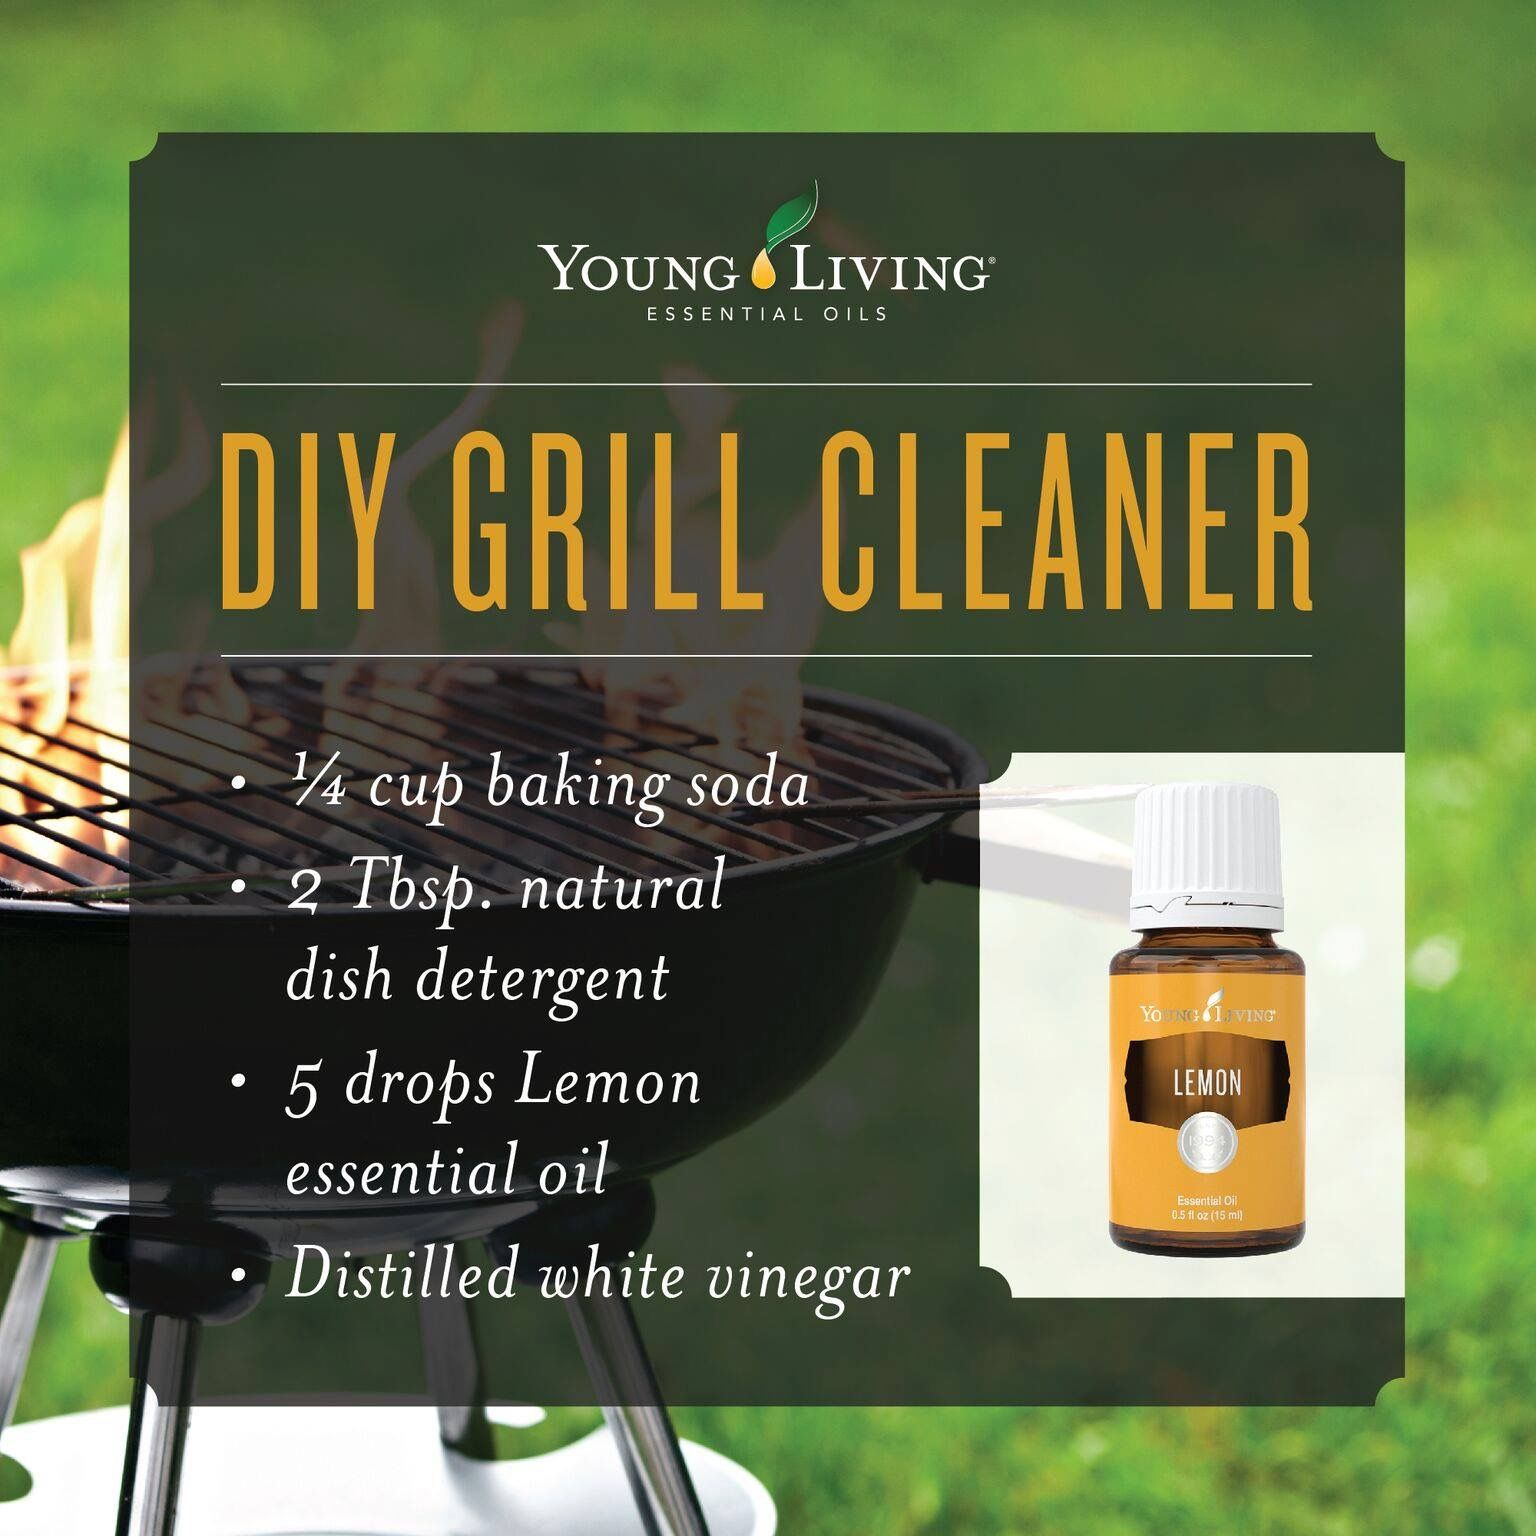 Natural grill cleaner with Young Living essential oils